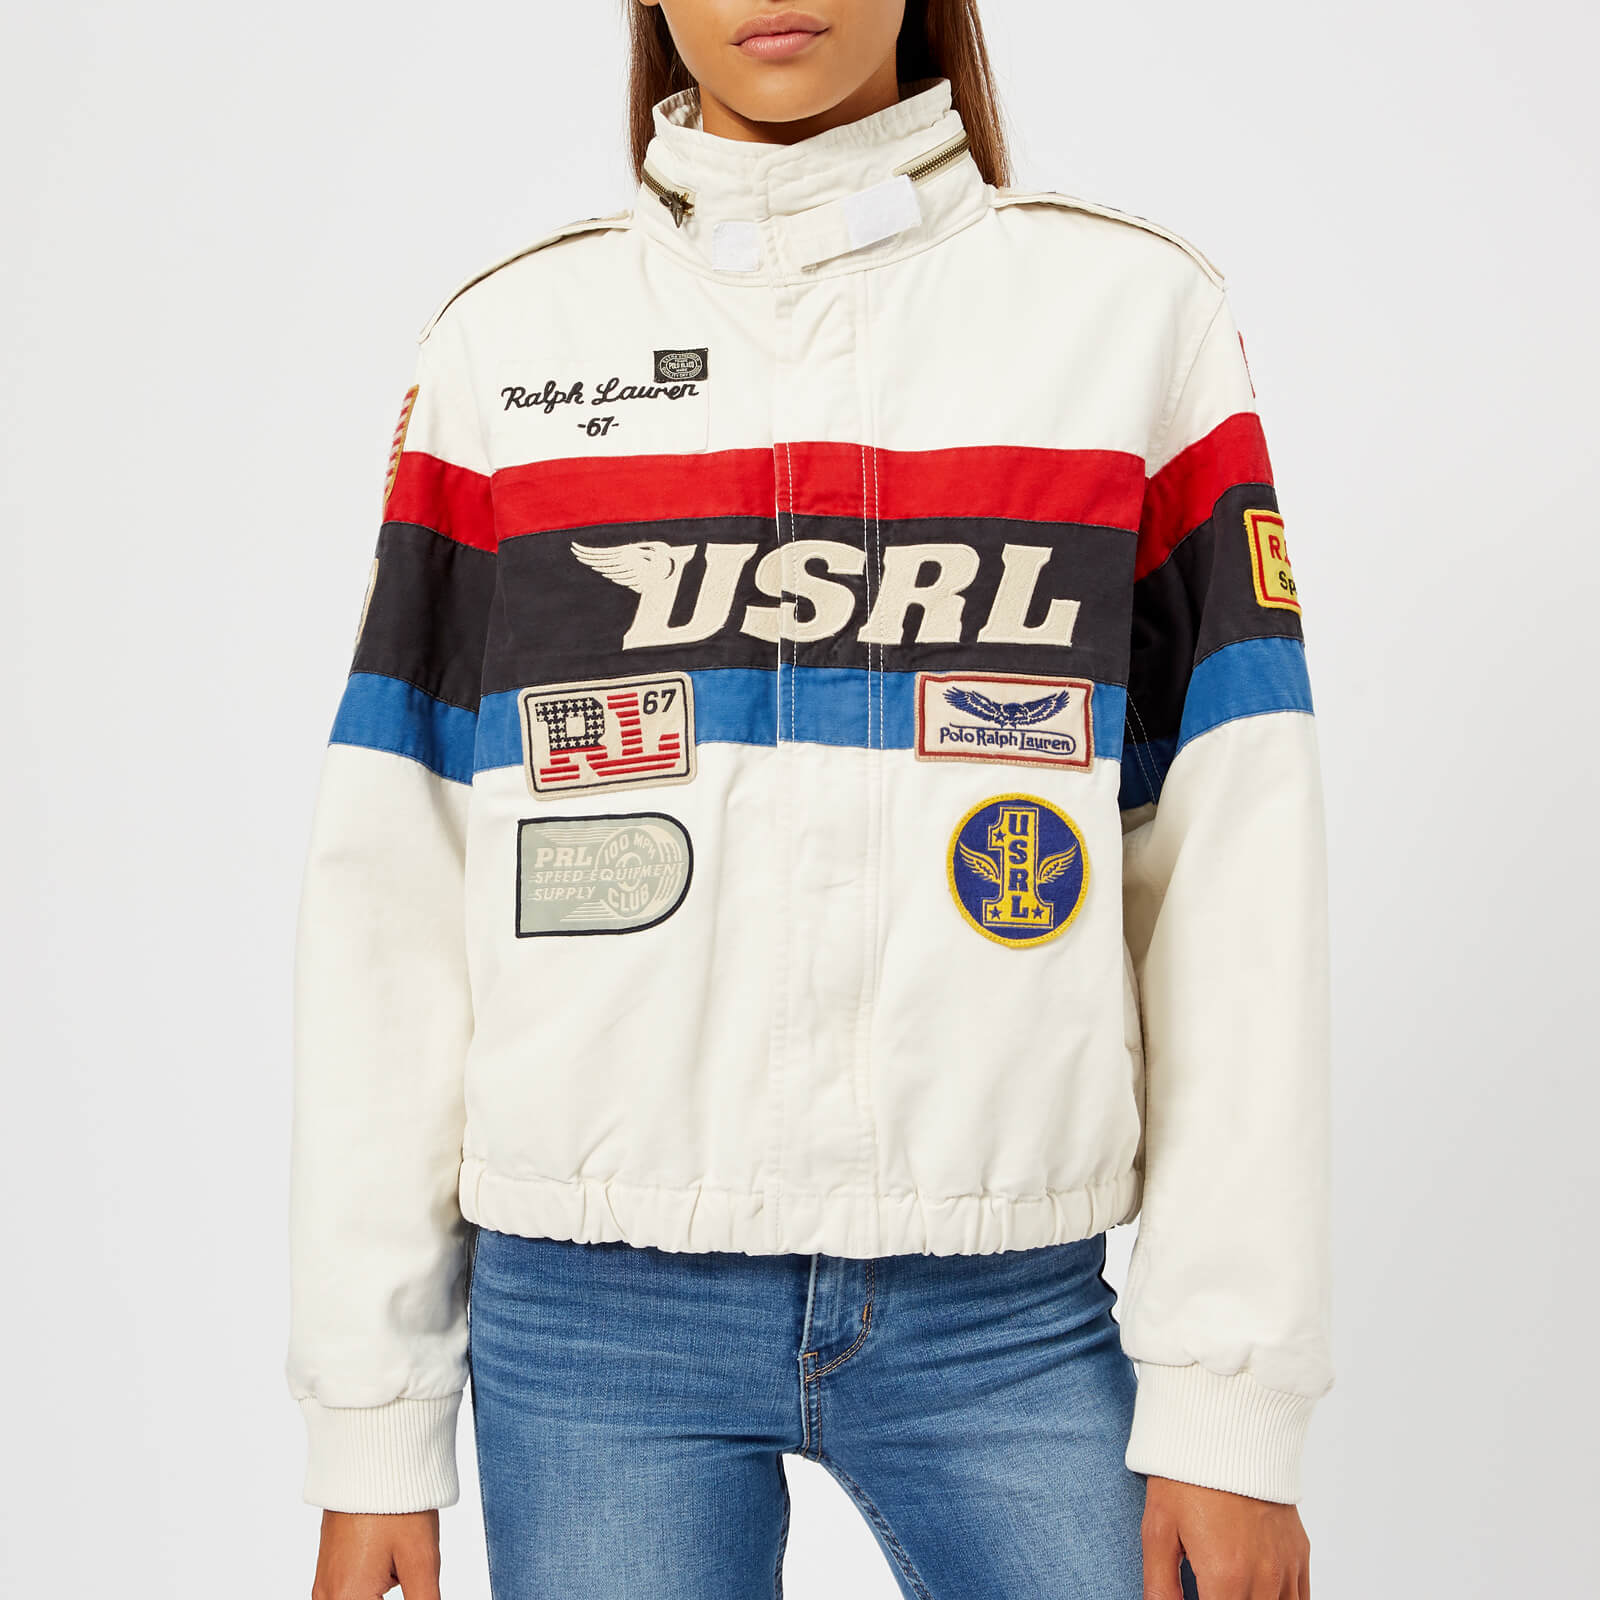 362ce7ea Polo Ralph Lauren Women's Racing Bomber Jacket - White/Blue/Red/Black Multi  - Free UK Delivery over £50